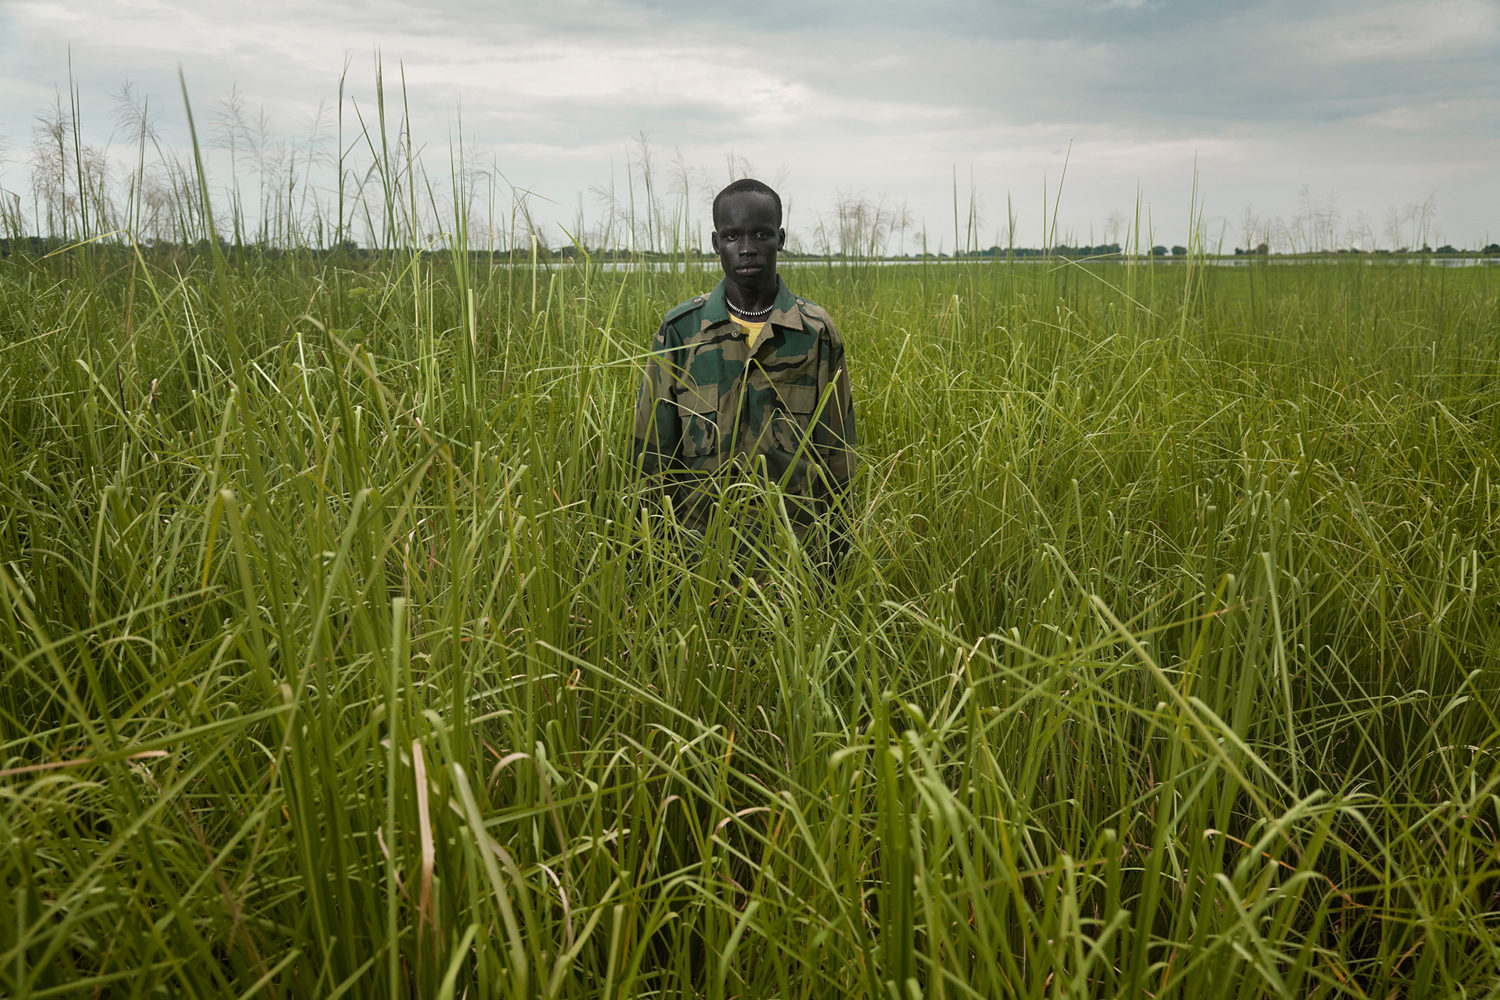 Umod, 2012. Lo inevitable is a series of photographs taken in Gambela (west of Ethiopia) in 2012.